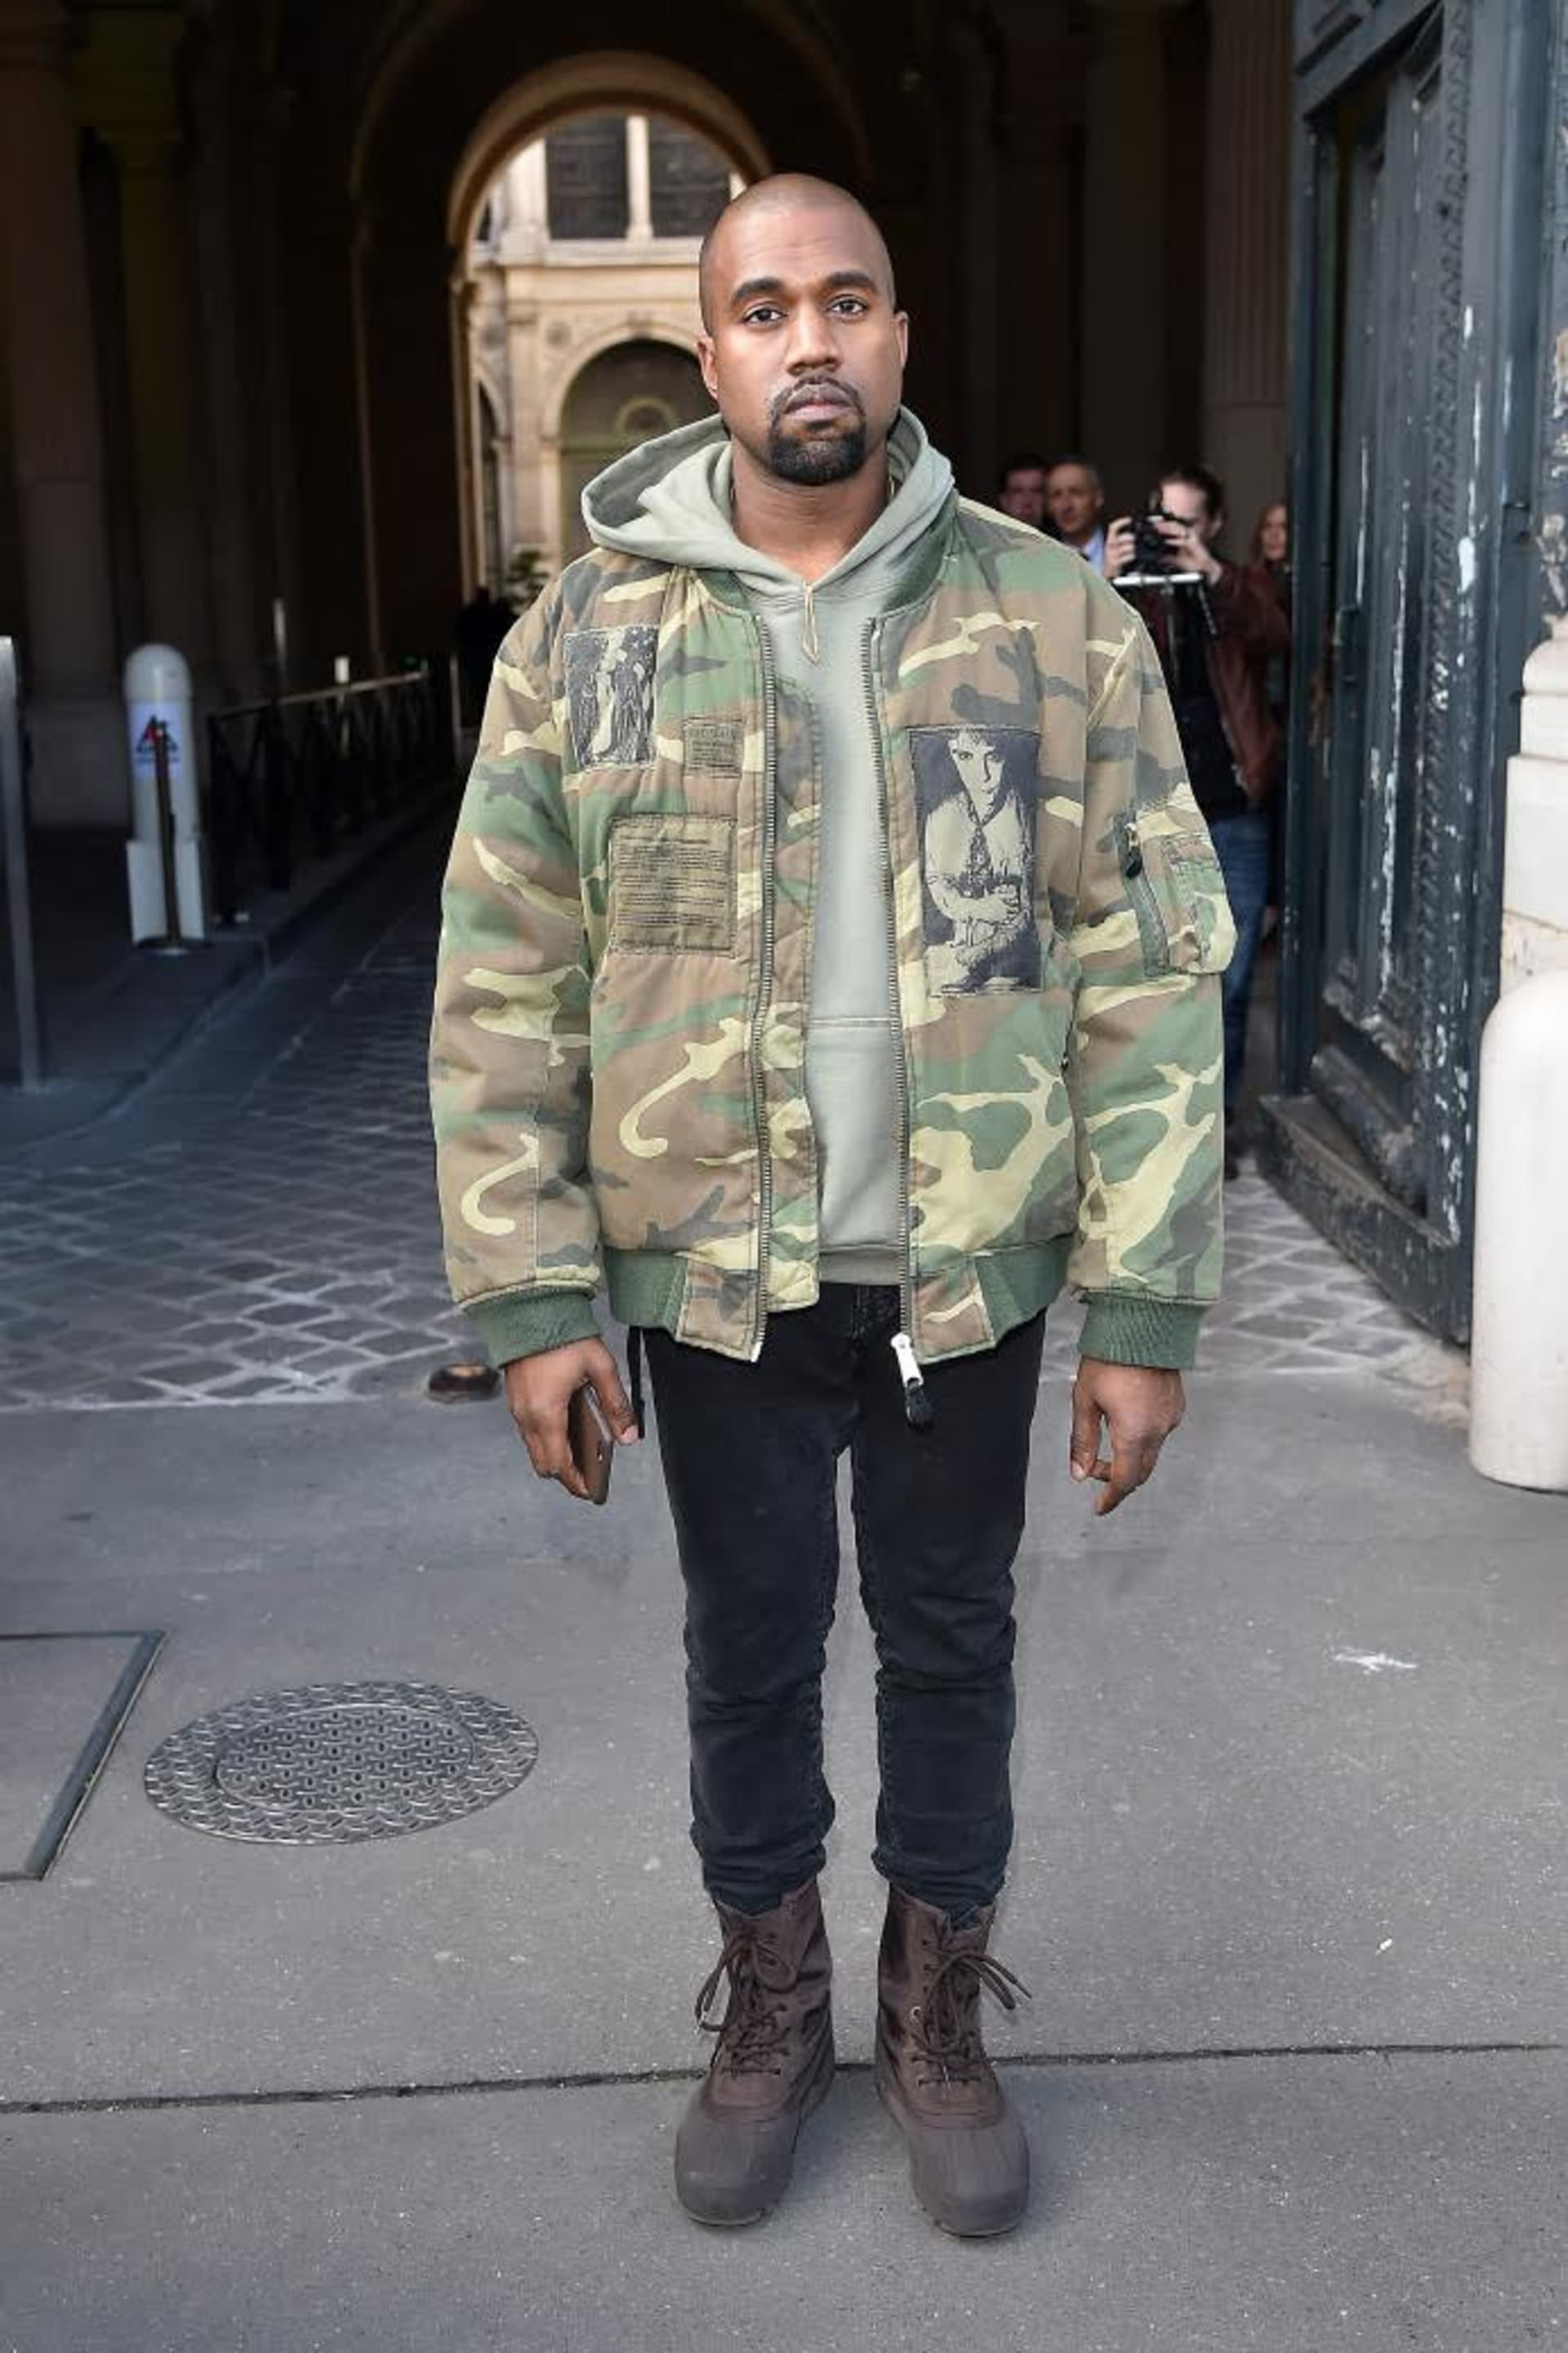 56eee610c31e Kanye West in a Raf Simons bomber from the 2001 Riot collection. Image  Jacopo Raule GC Images